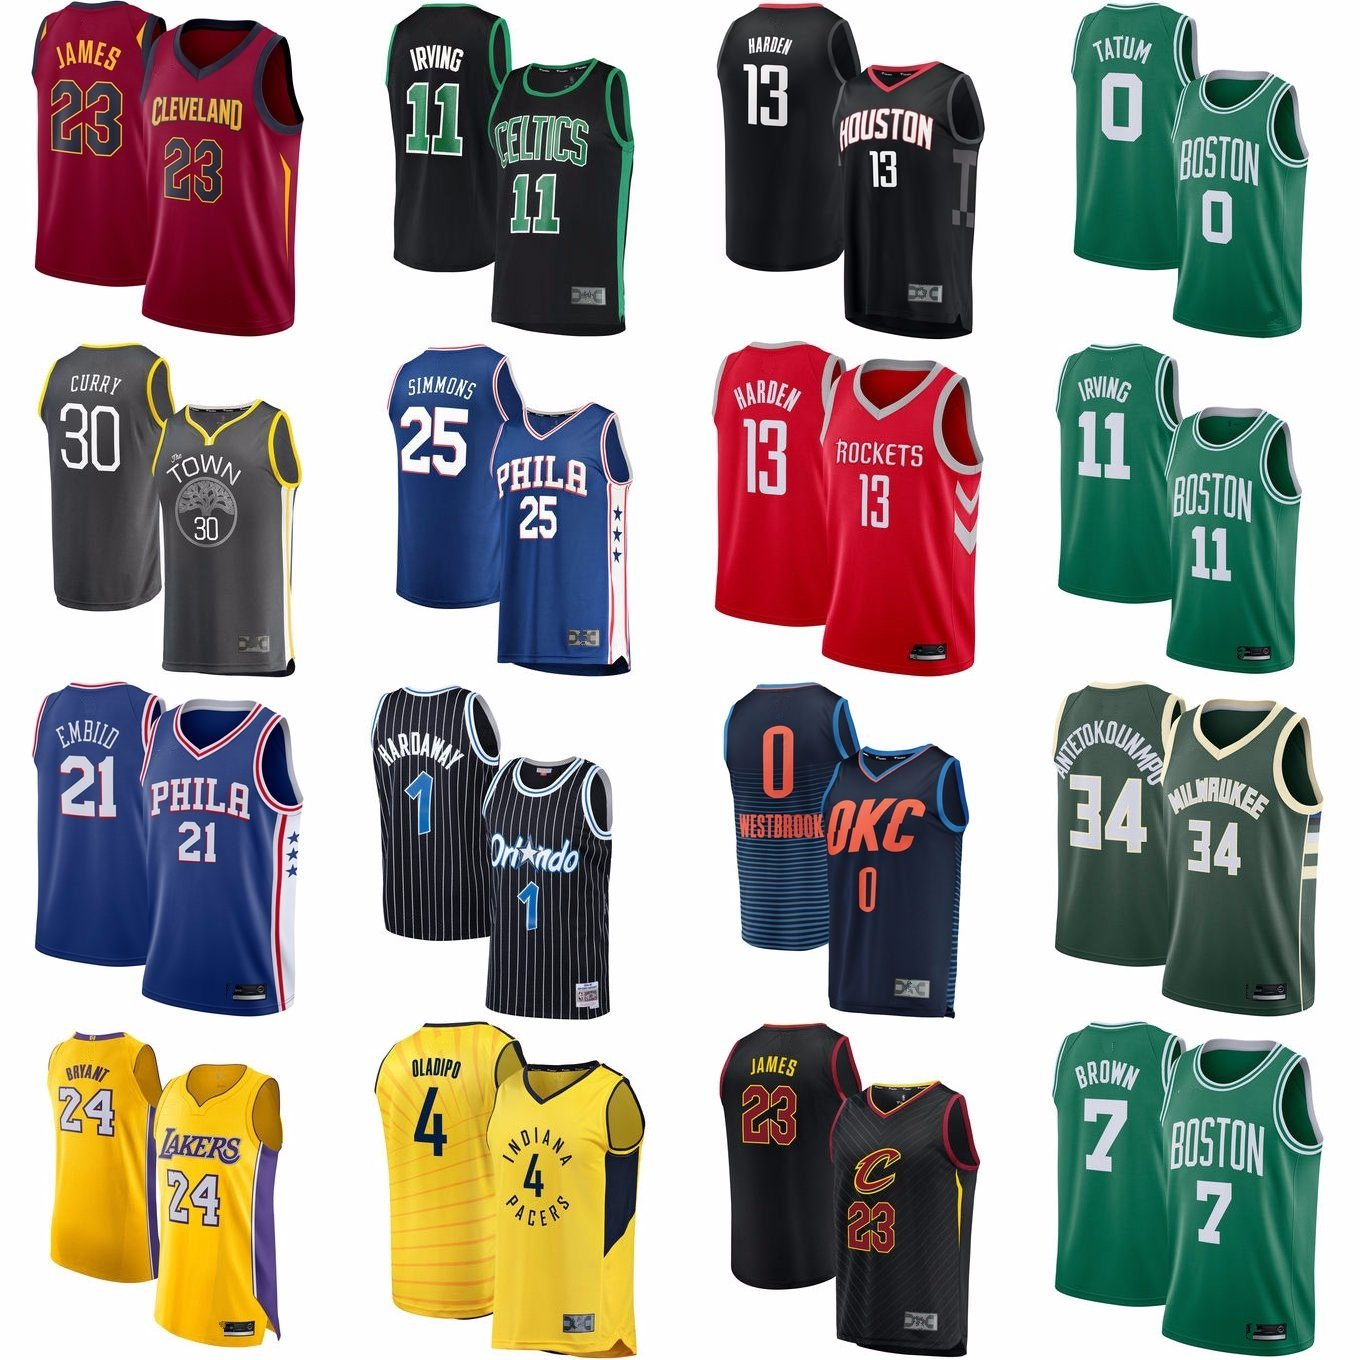 2d257510fb7 China Factory Outlet All Teams Top Selling Players Basketball ...